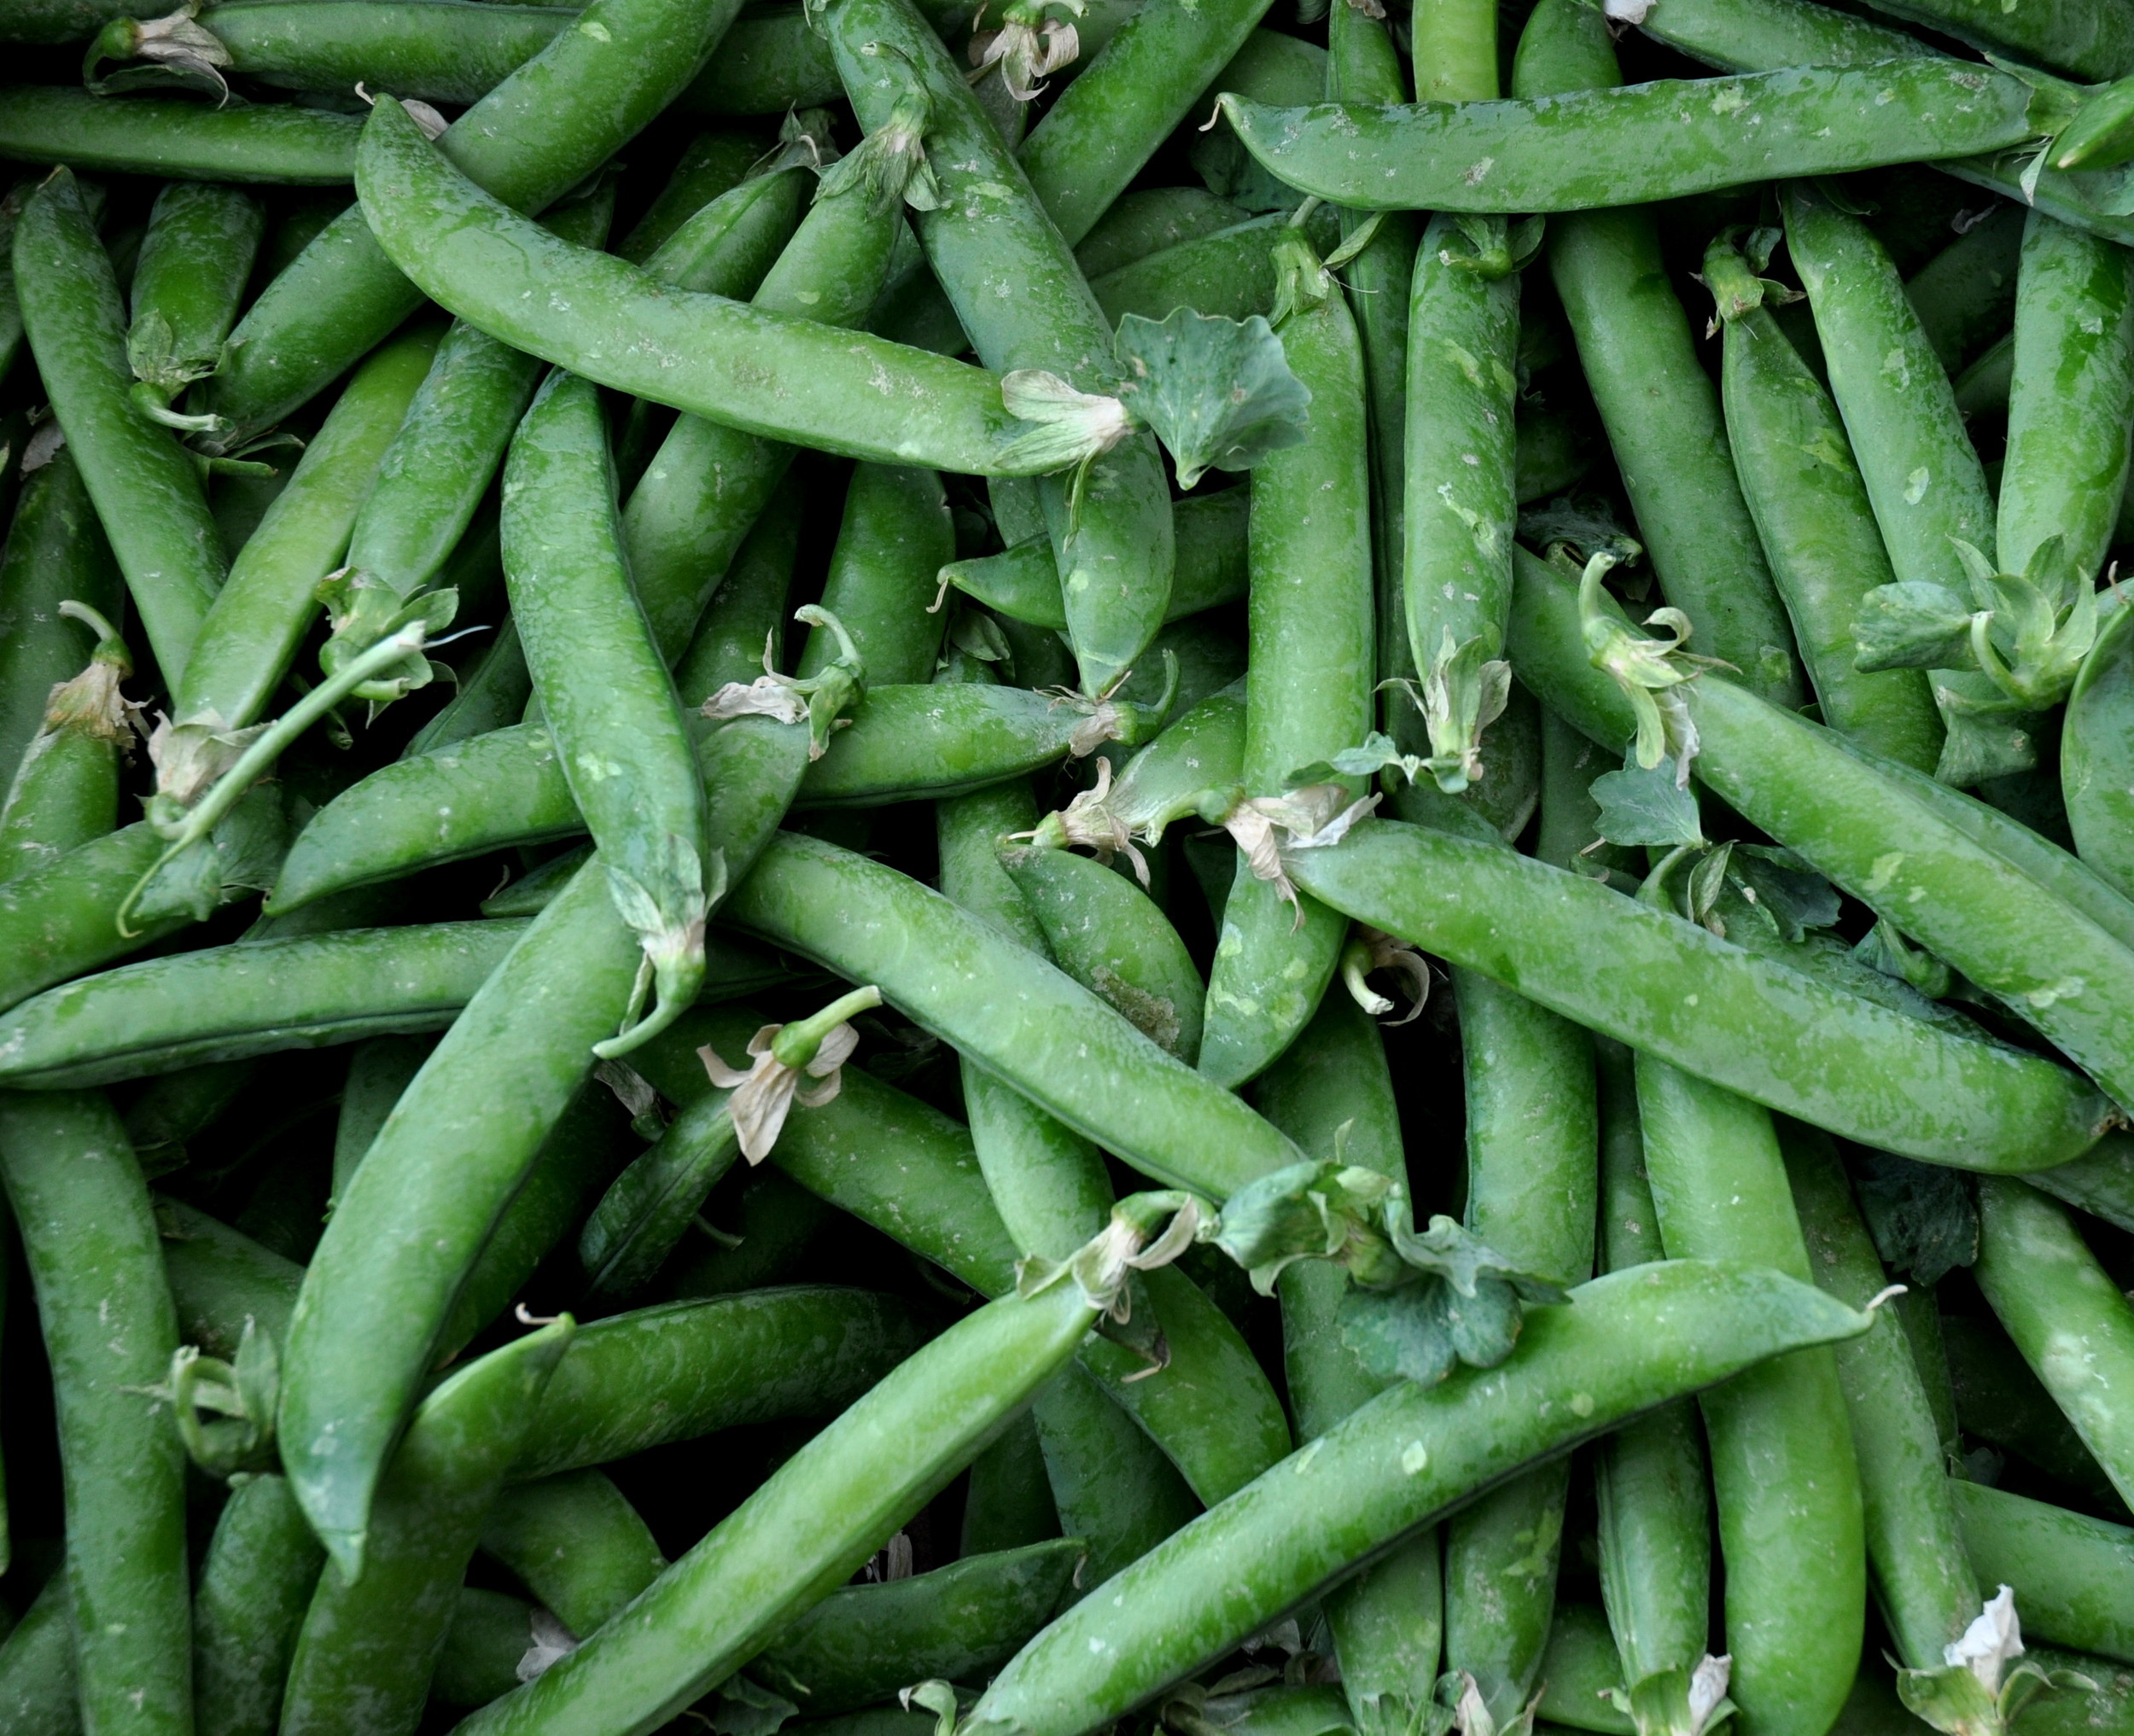 English shelling peas from Alvarez Organic Farms. Photo copyright 2013 by Zachary D. Lyons.